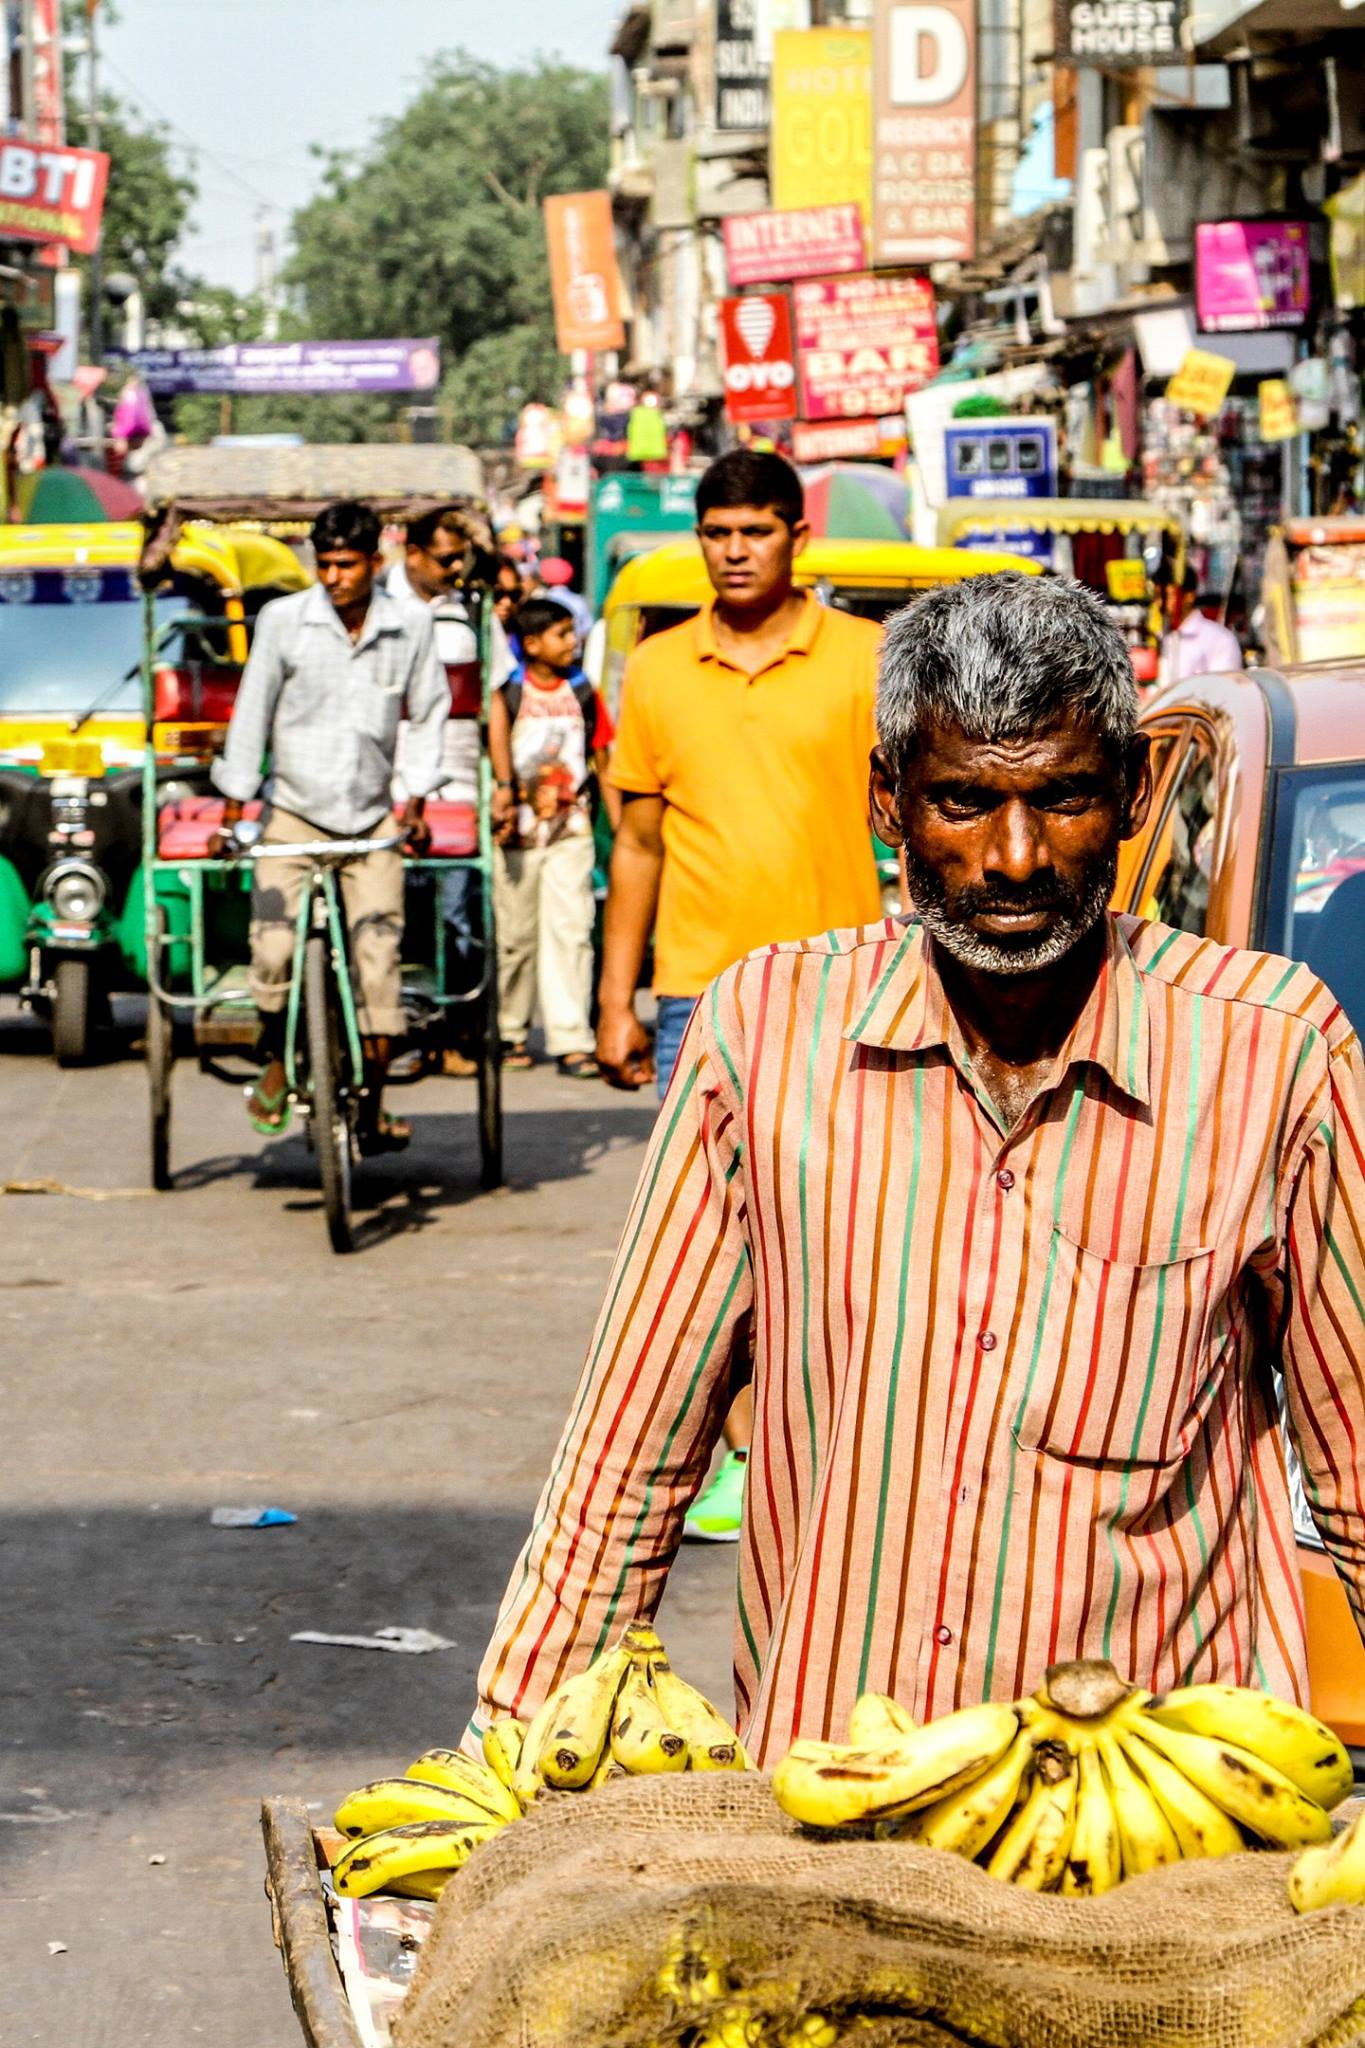 photographing people in india